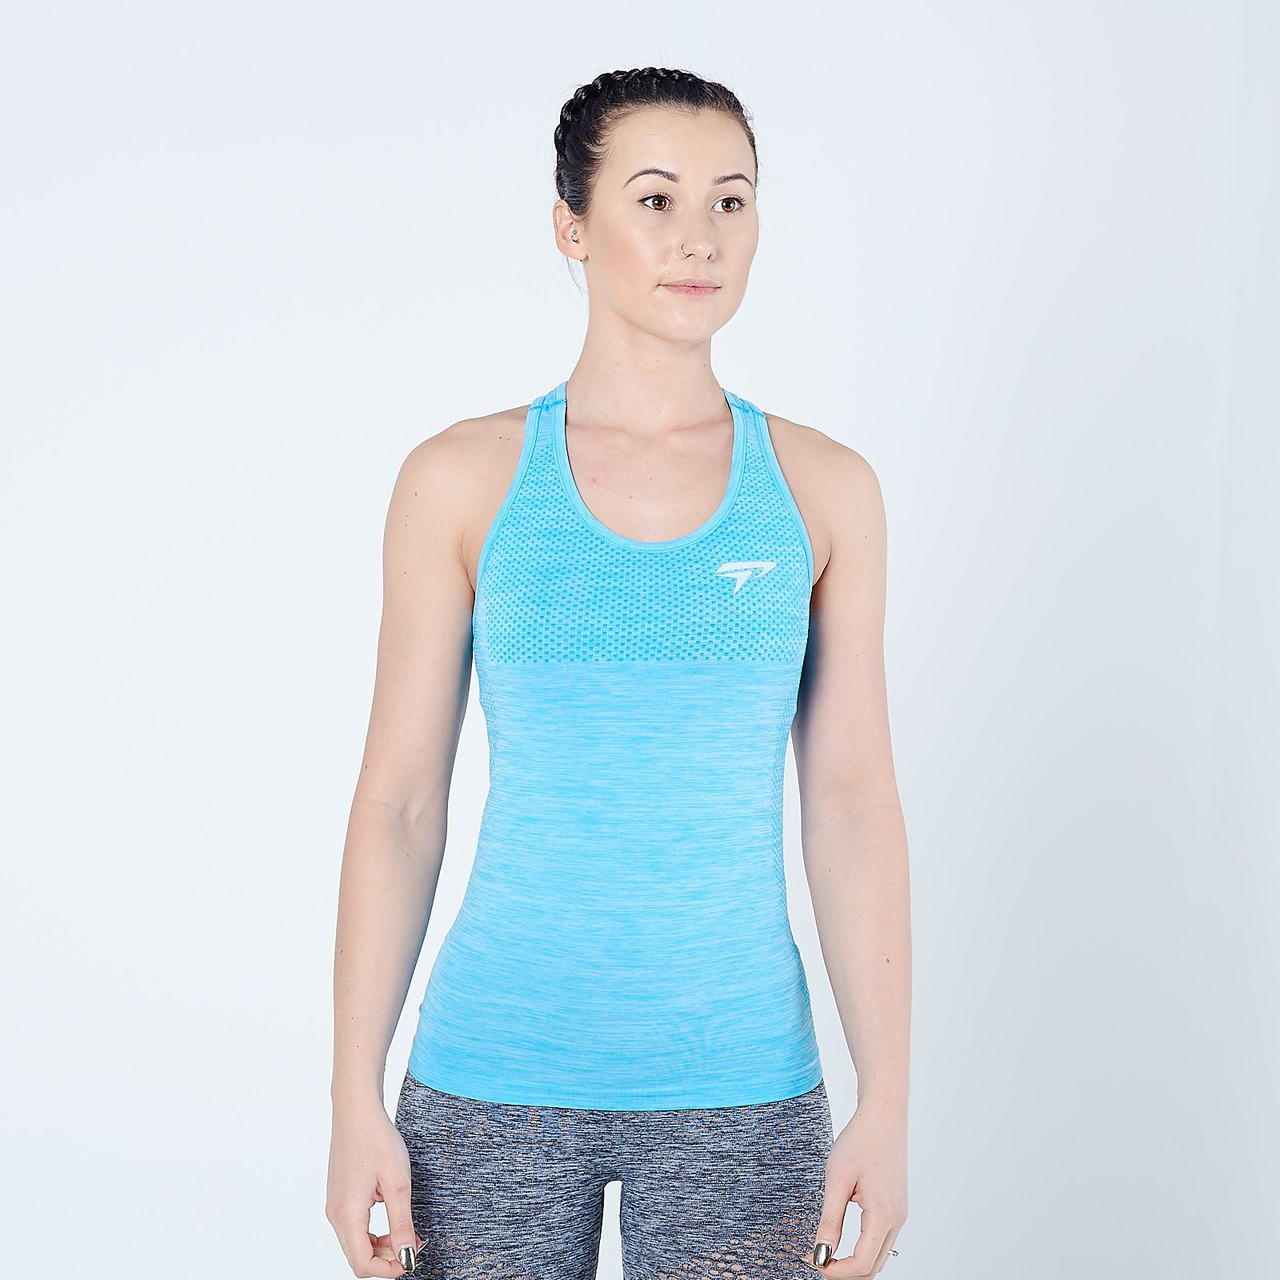 Women's Physiq Apparel - HyperKnit Tank Top - Aqua